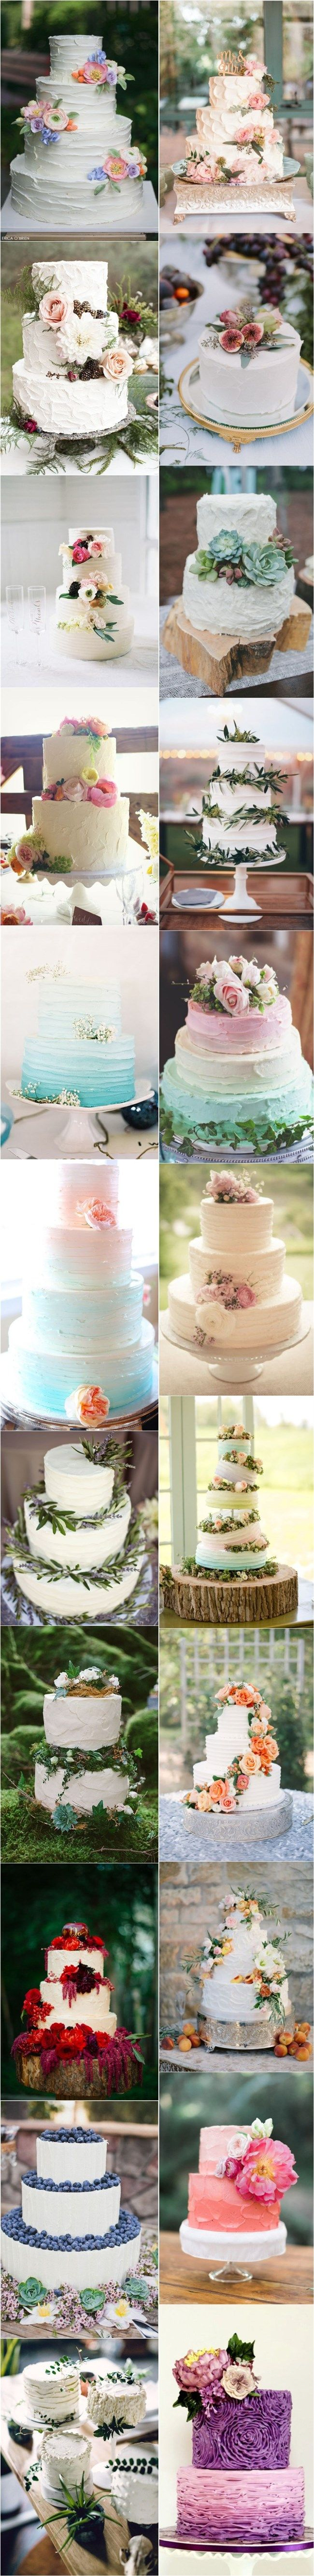 25 Buttercream Wedding Cakes We�d (Almost) Kill For (with Tutorial) | http://www.deerpearlflowers.com/25-buttercream-wedding-cakes-wed-almost-kill-for-with-tutorial/